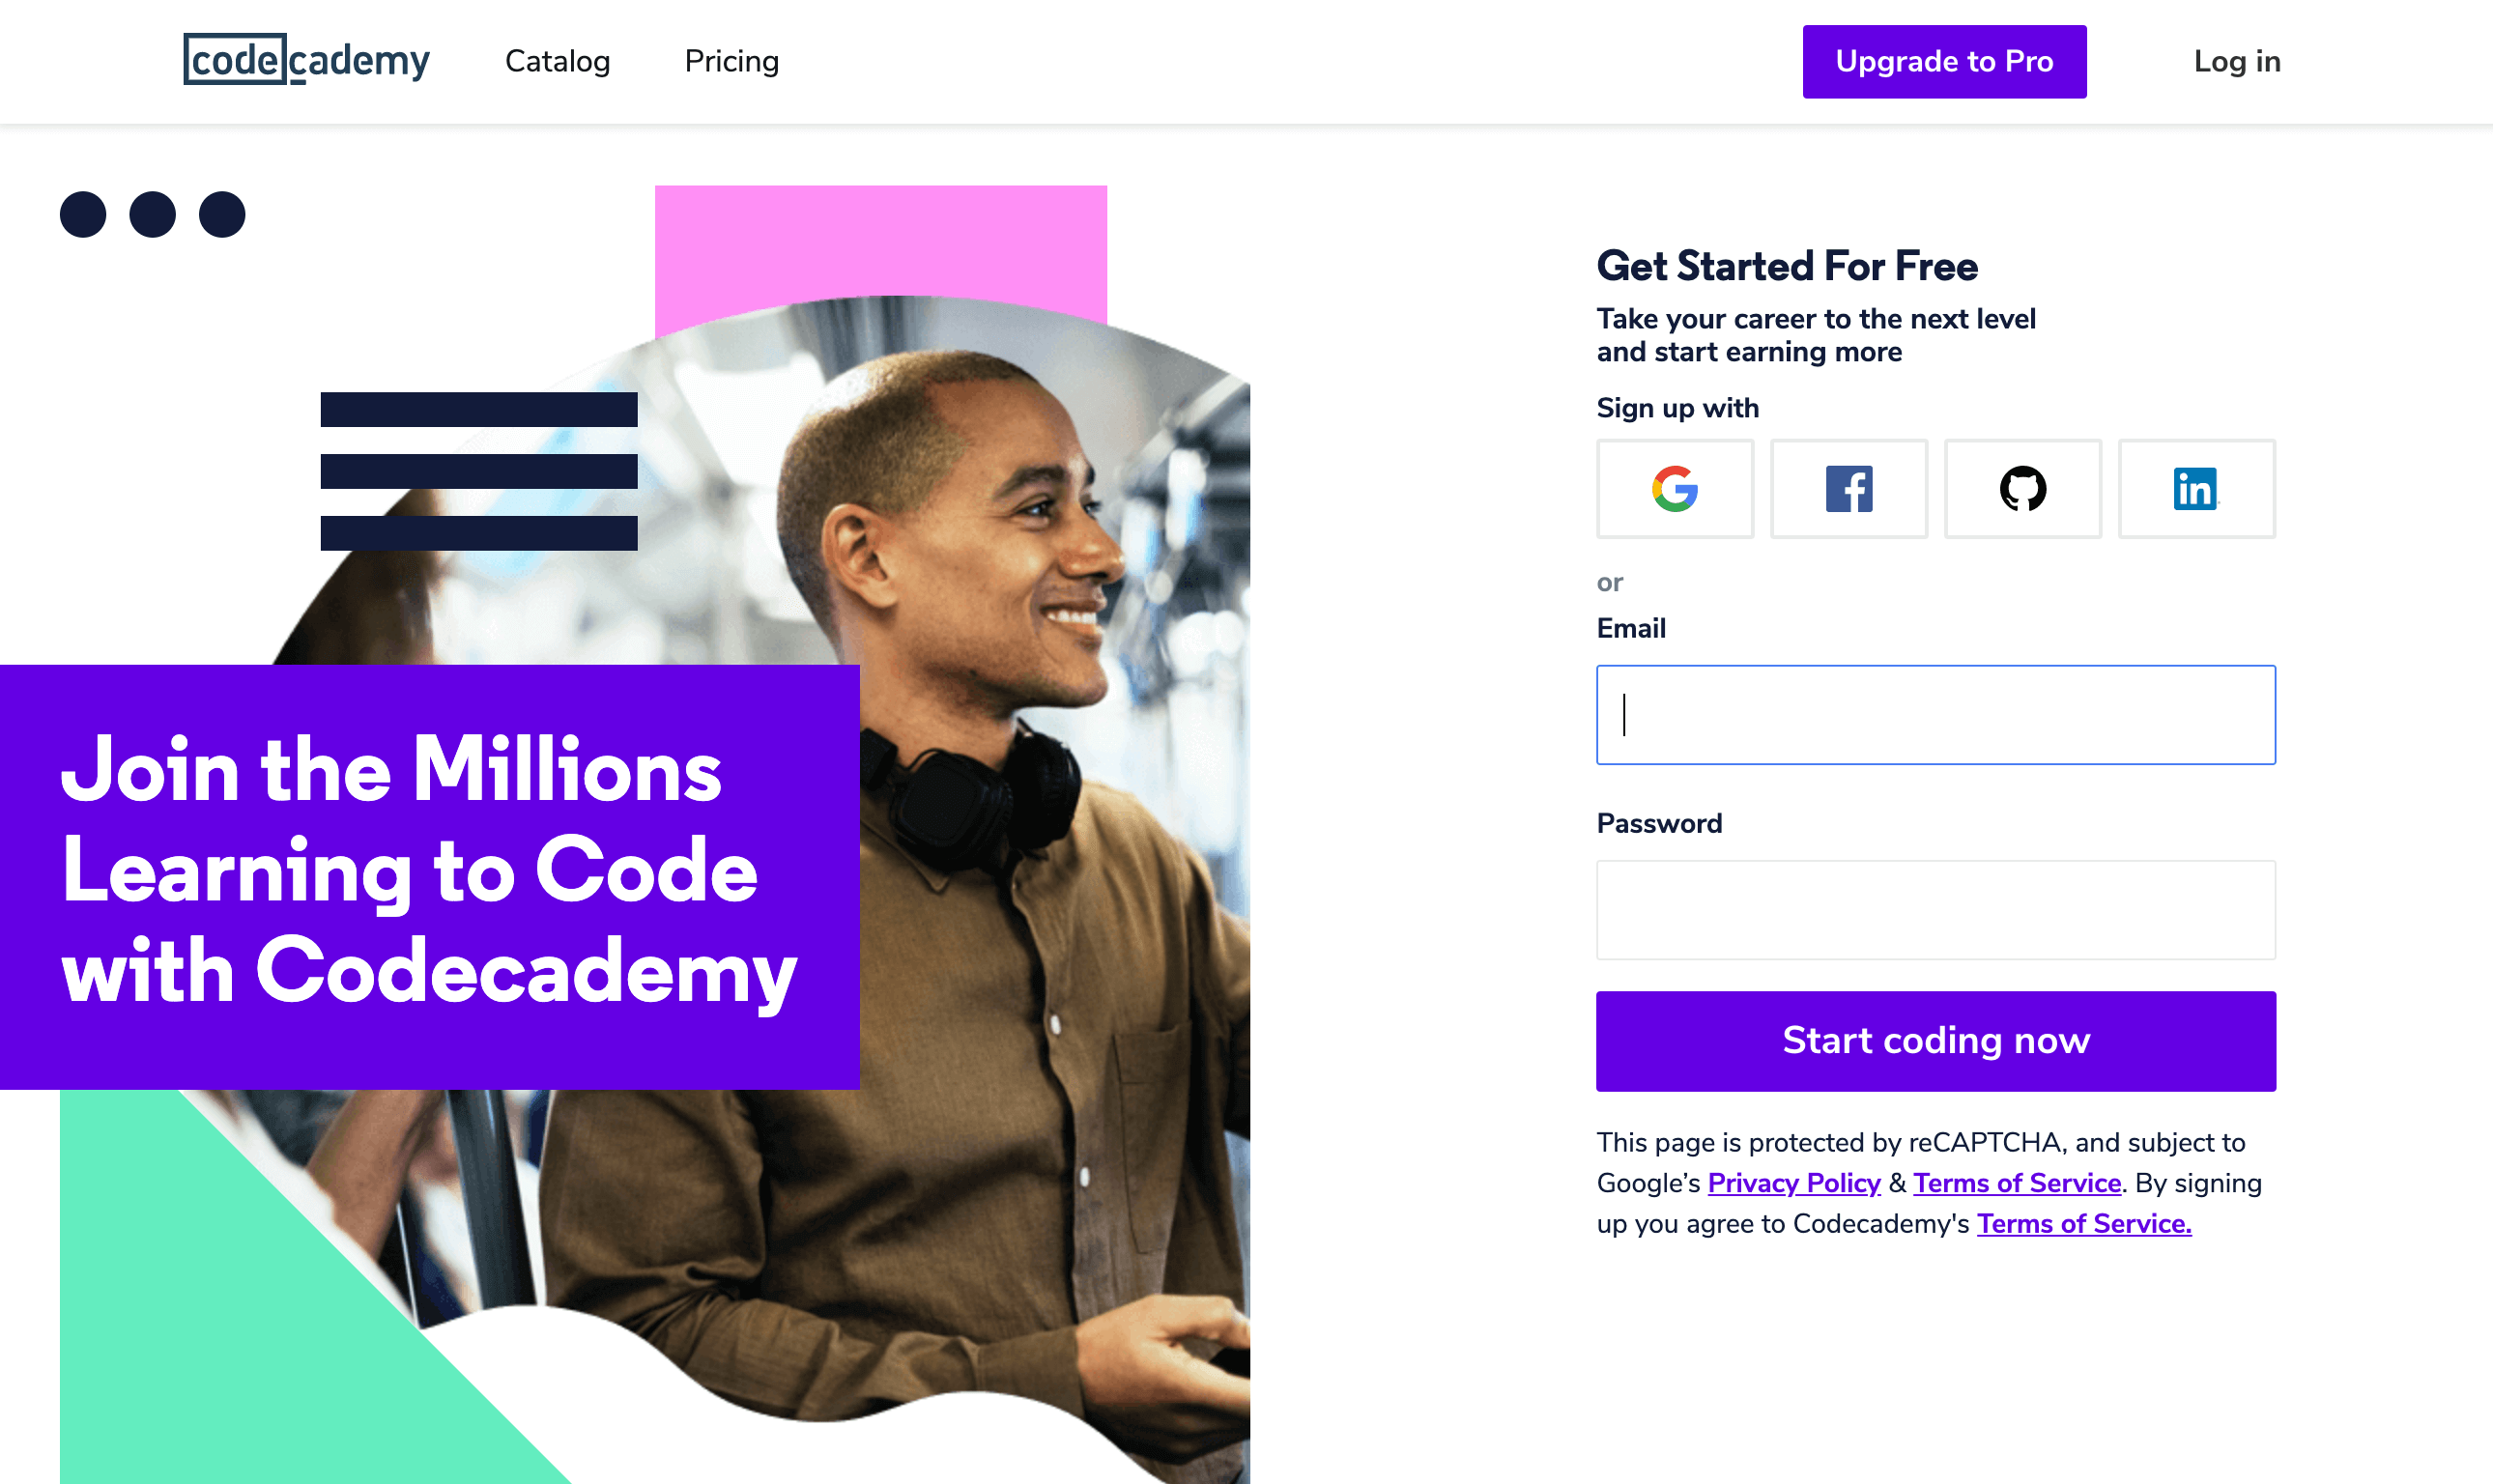 La page d'accueil Codecademy.